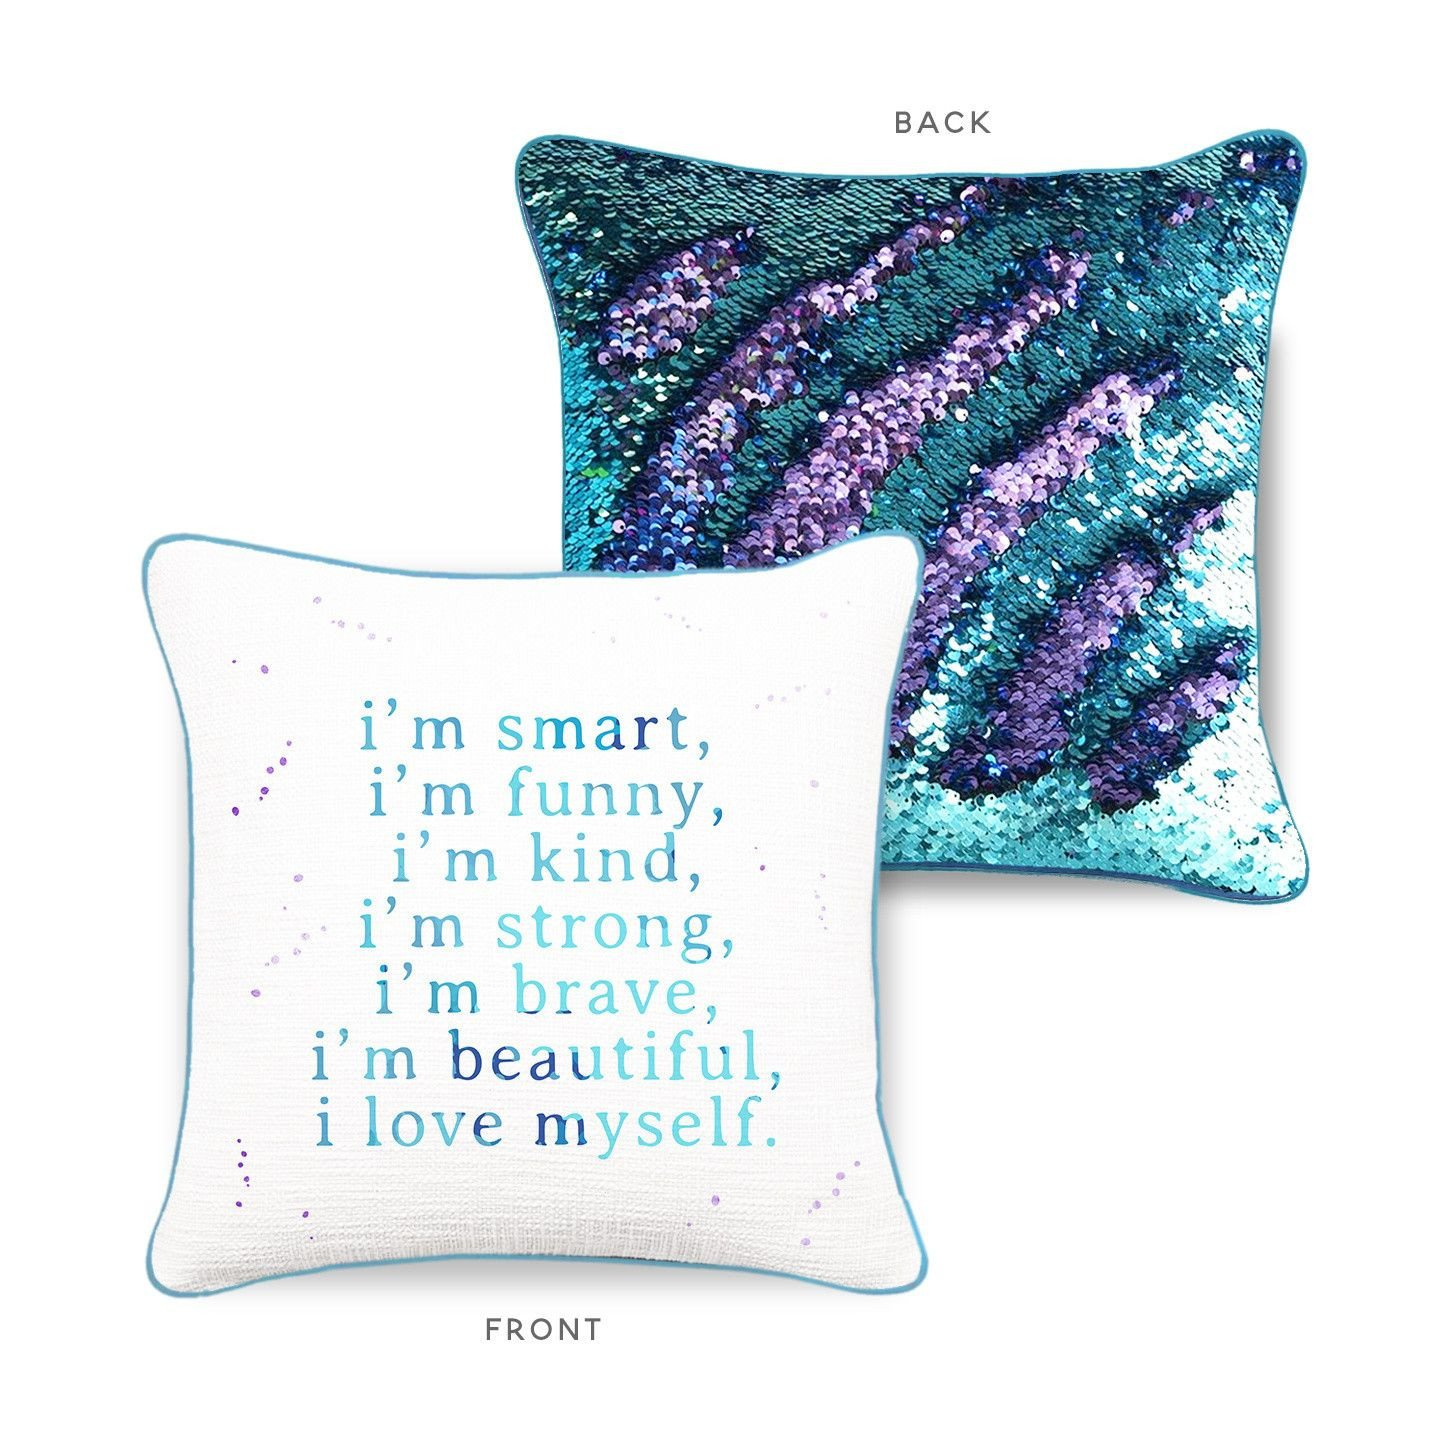 mermaid pillow co. pillow pic